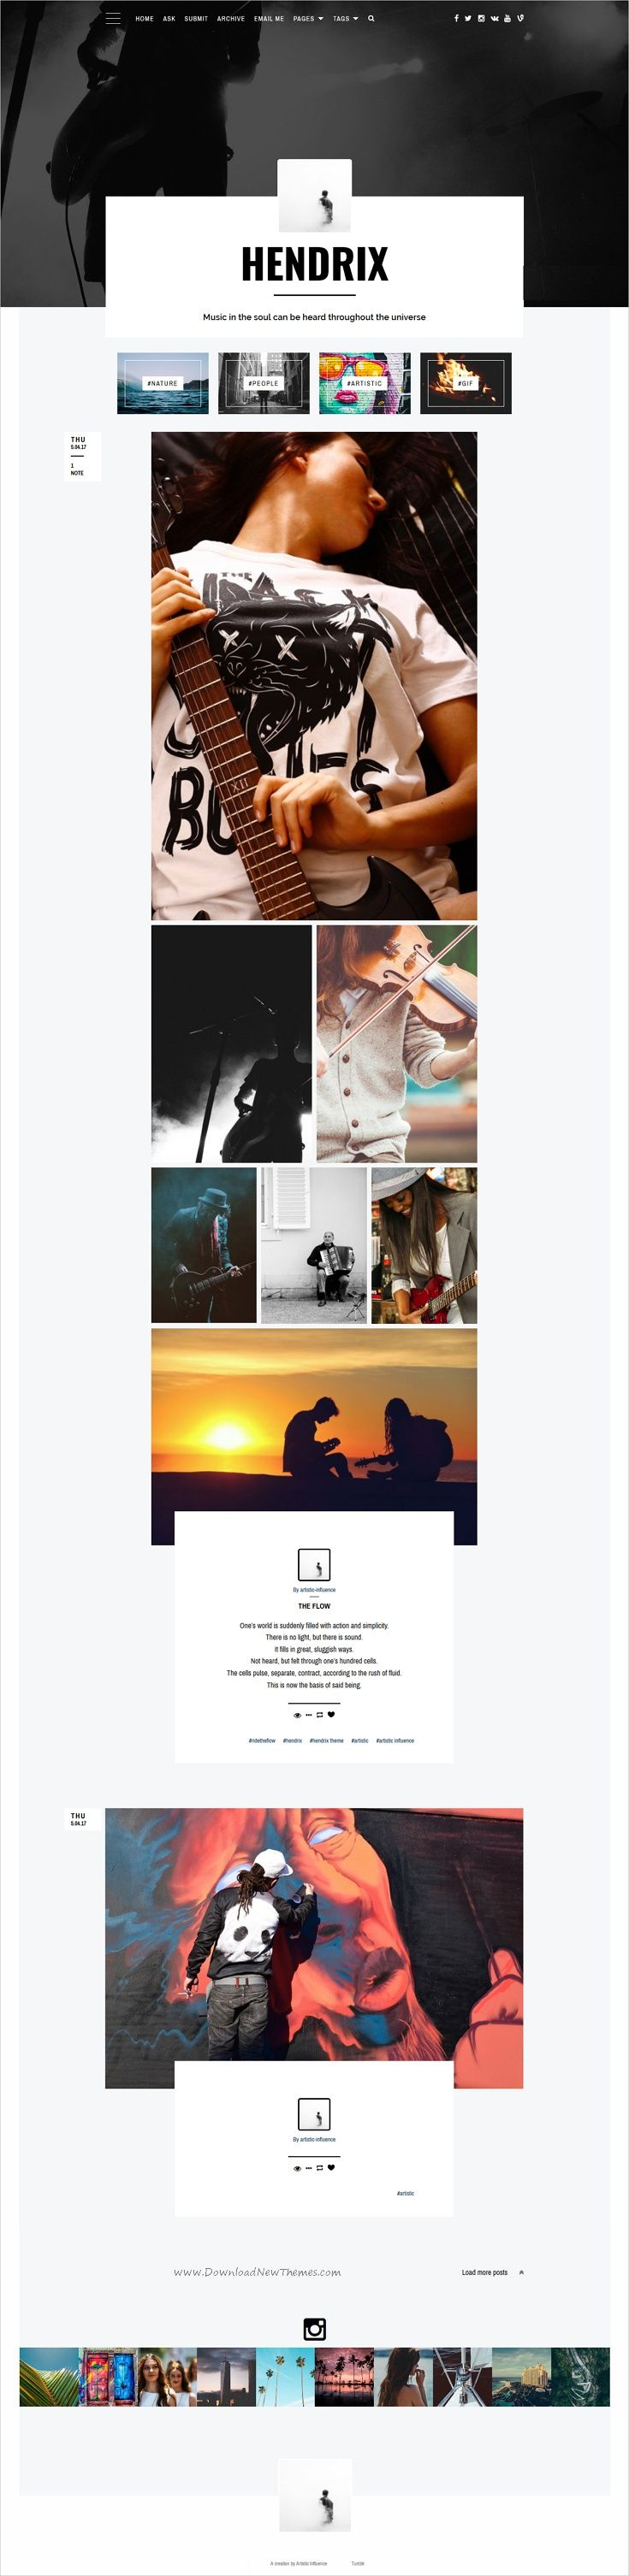 Hendrix is feature rich and aesthetically #beautiful single column #Tumblr theme for artists, creatives, personal and corporate content creators website download now..